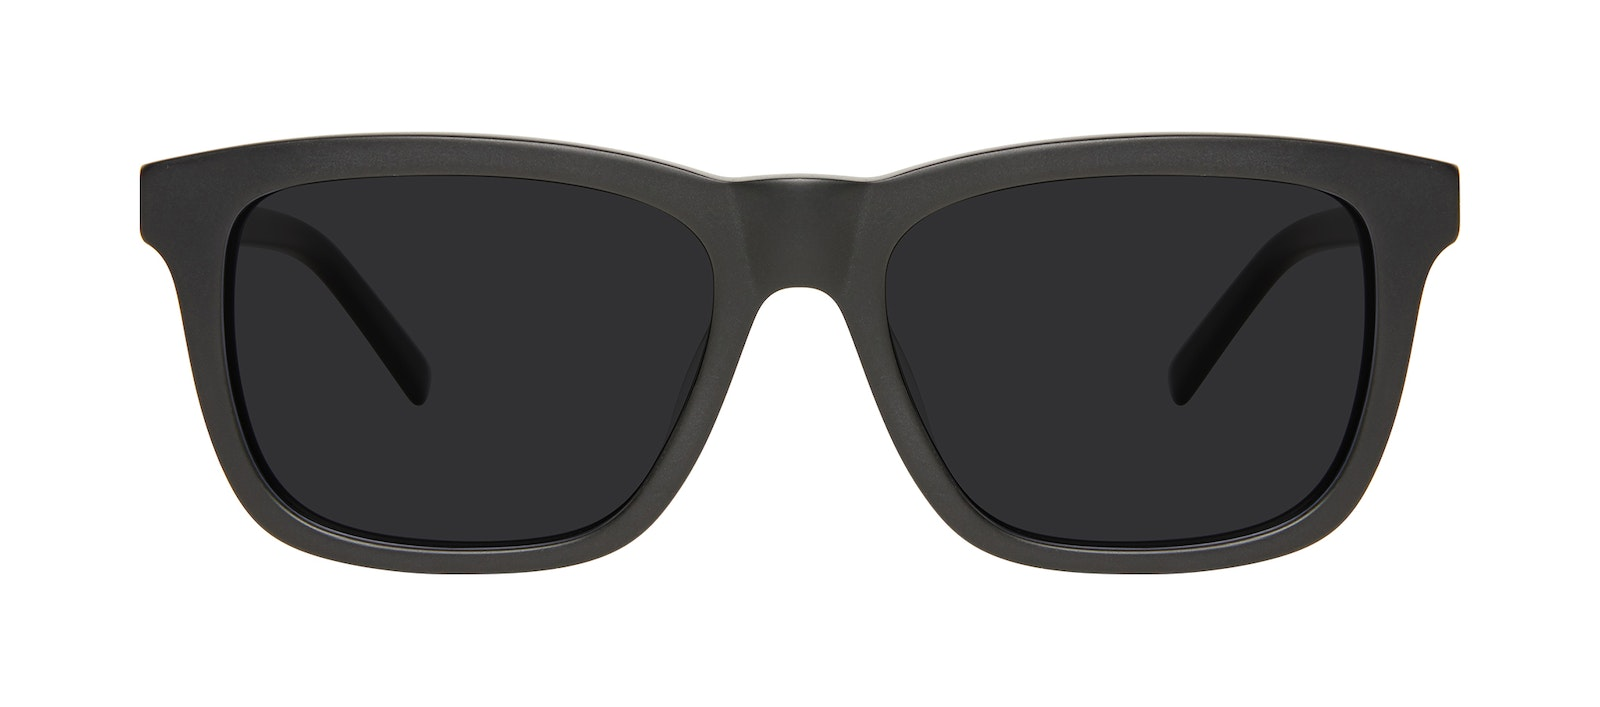 Affordable Fashion Glasses Square Sunglasses Men Code Matte Black Front